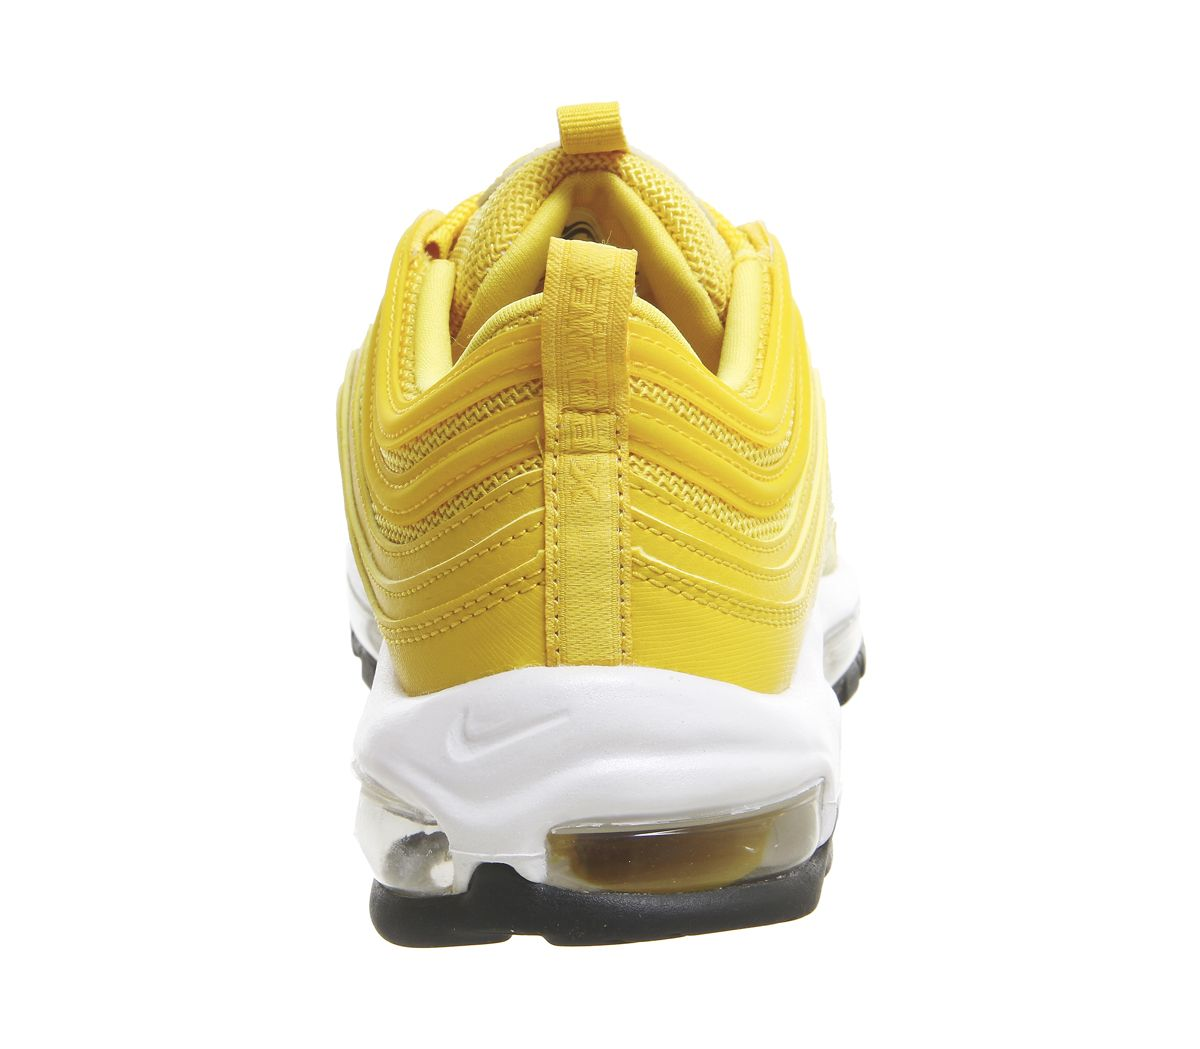 34b2c19574 Nike Air Max 97 Trainers Mustard Buff Gold - Hers trainers